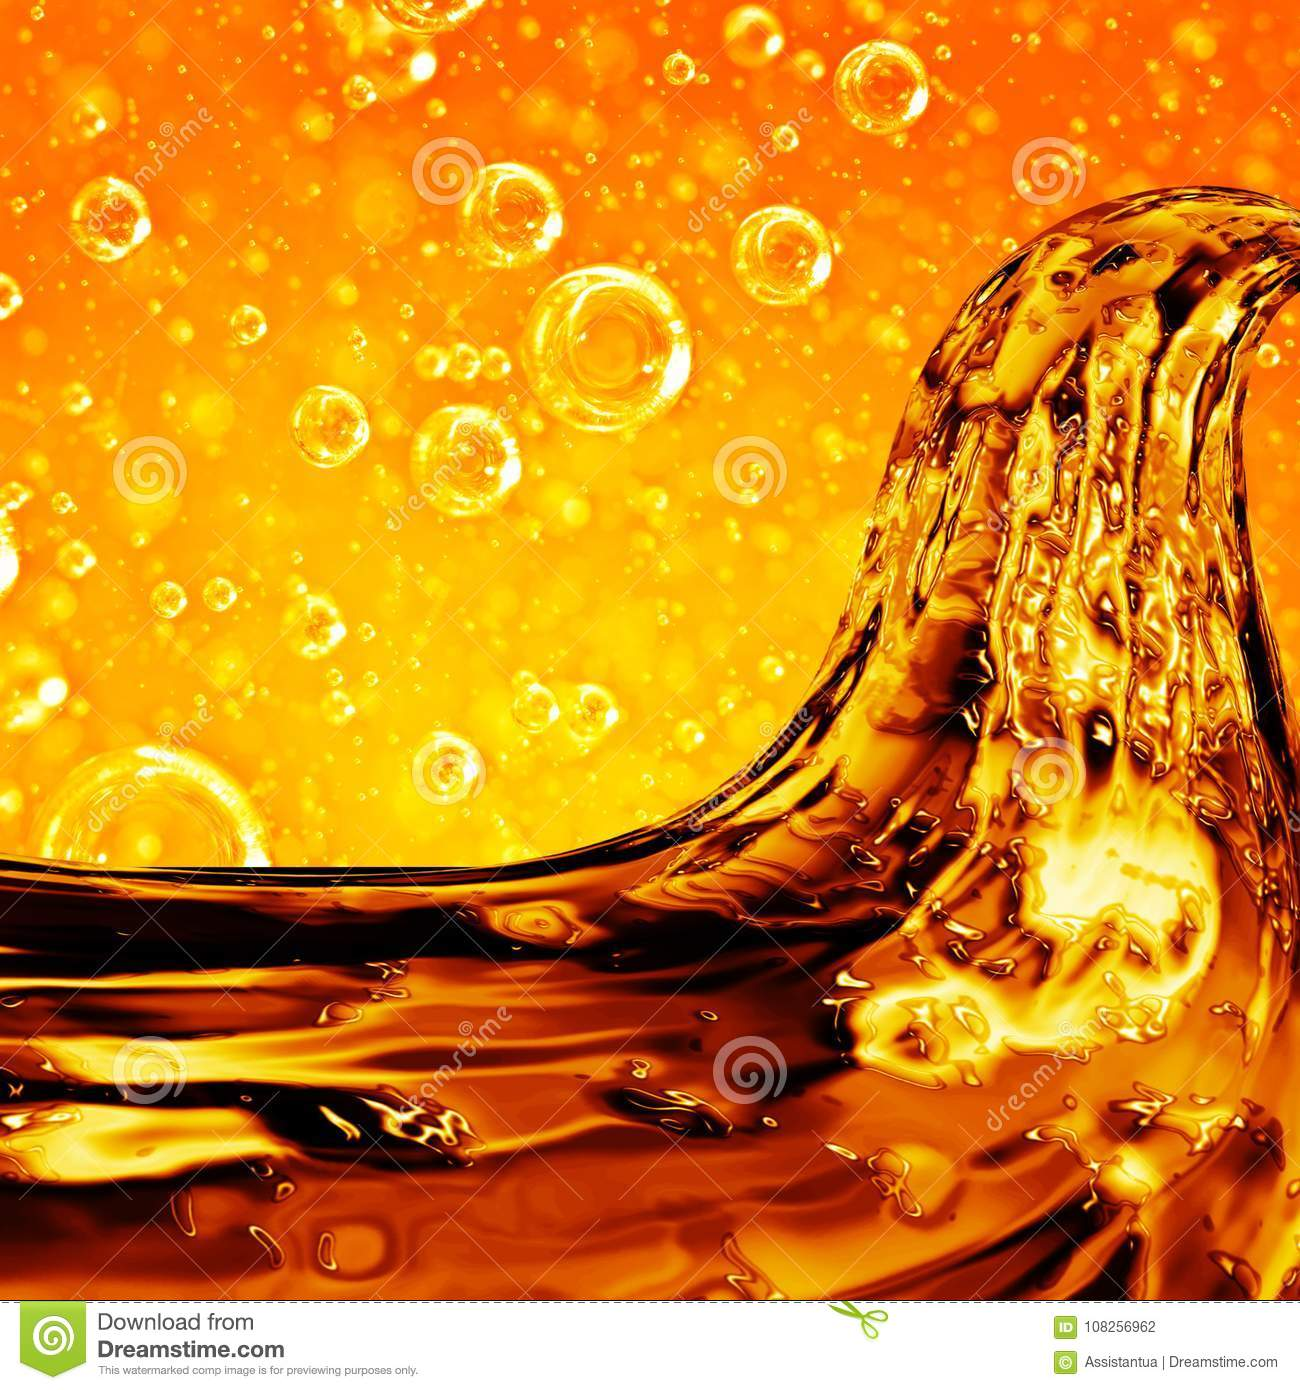 Liquid wave golden, for the project, oil, honey, beer or other v